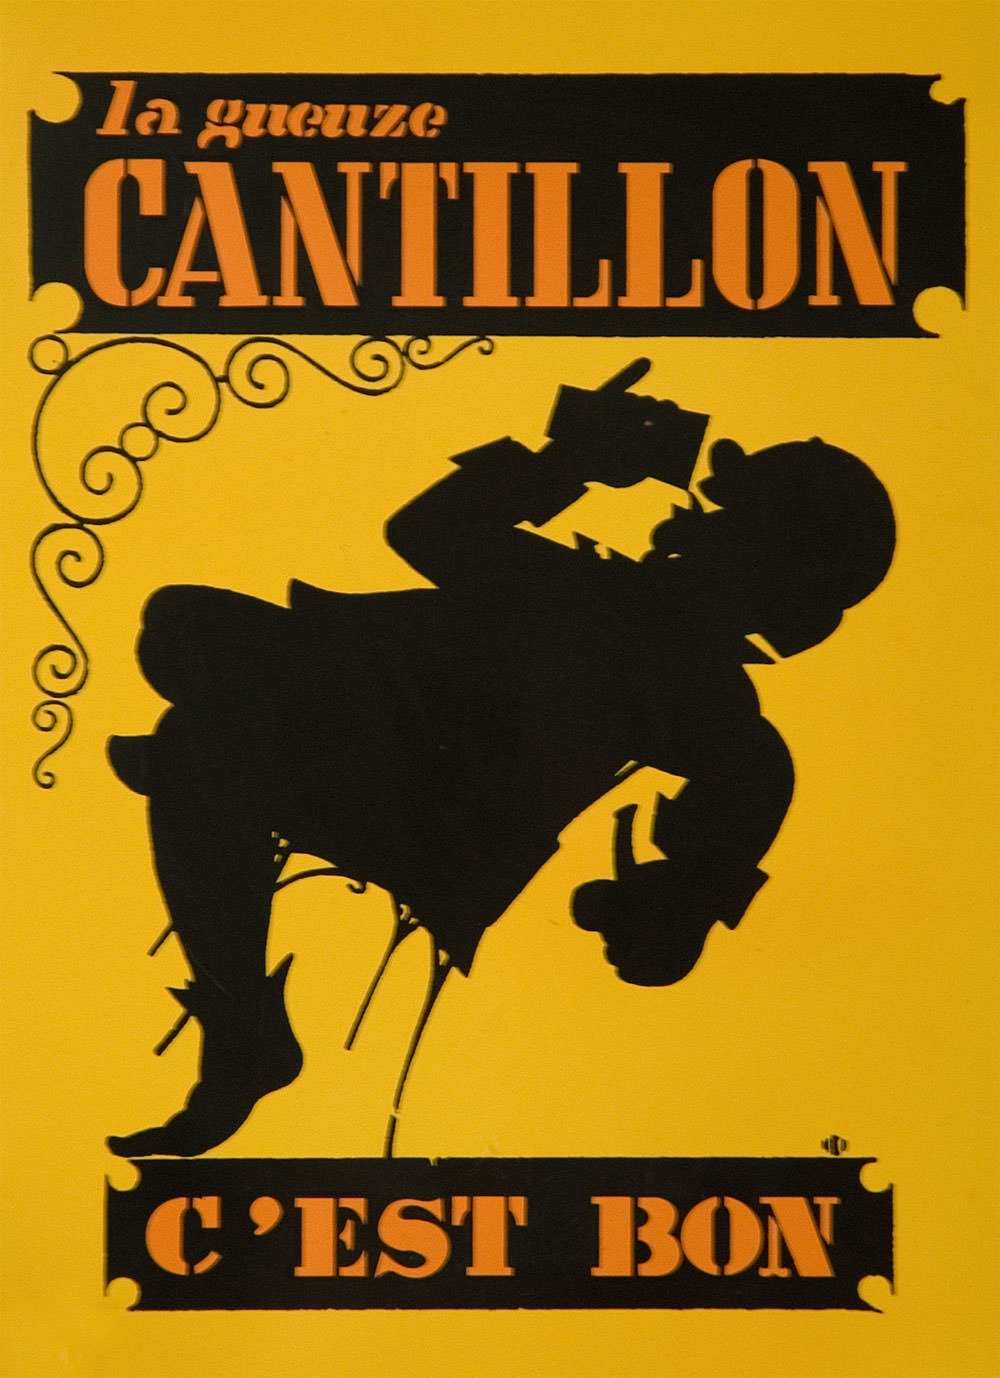 Cantillon Sign